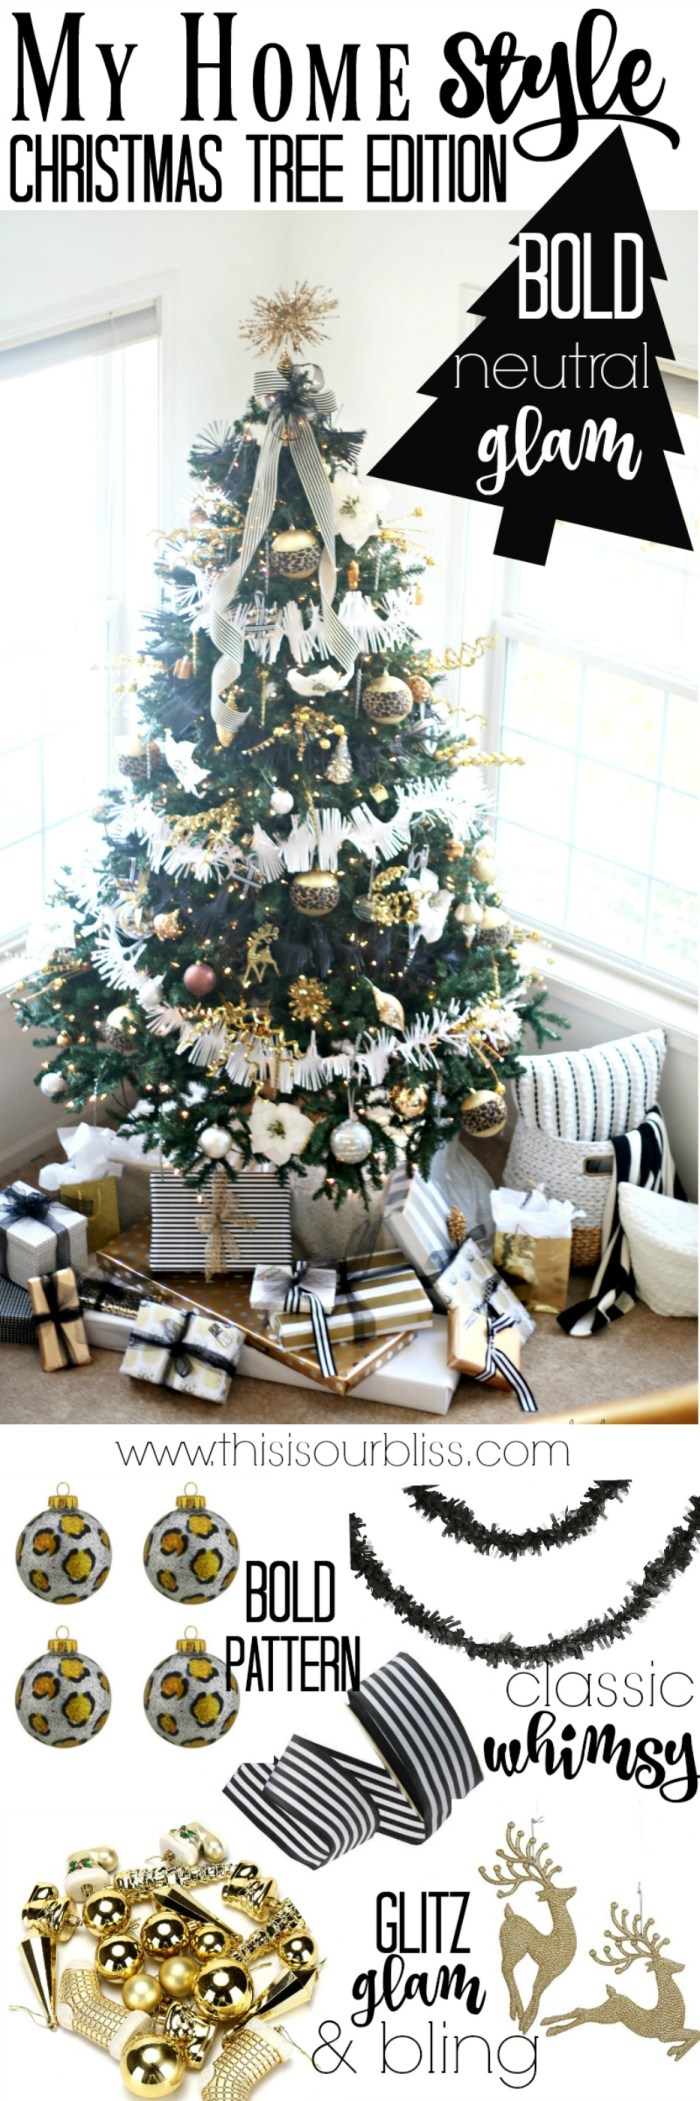 This is our Bliss Merry & Metallic Christmas Living Room with a Bold Neutral Glam Christmas Tree | My Home Style Blog Hop Christmas Tree Edition 2016